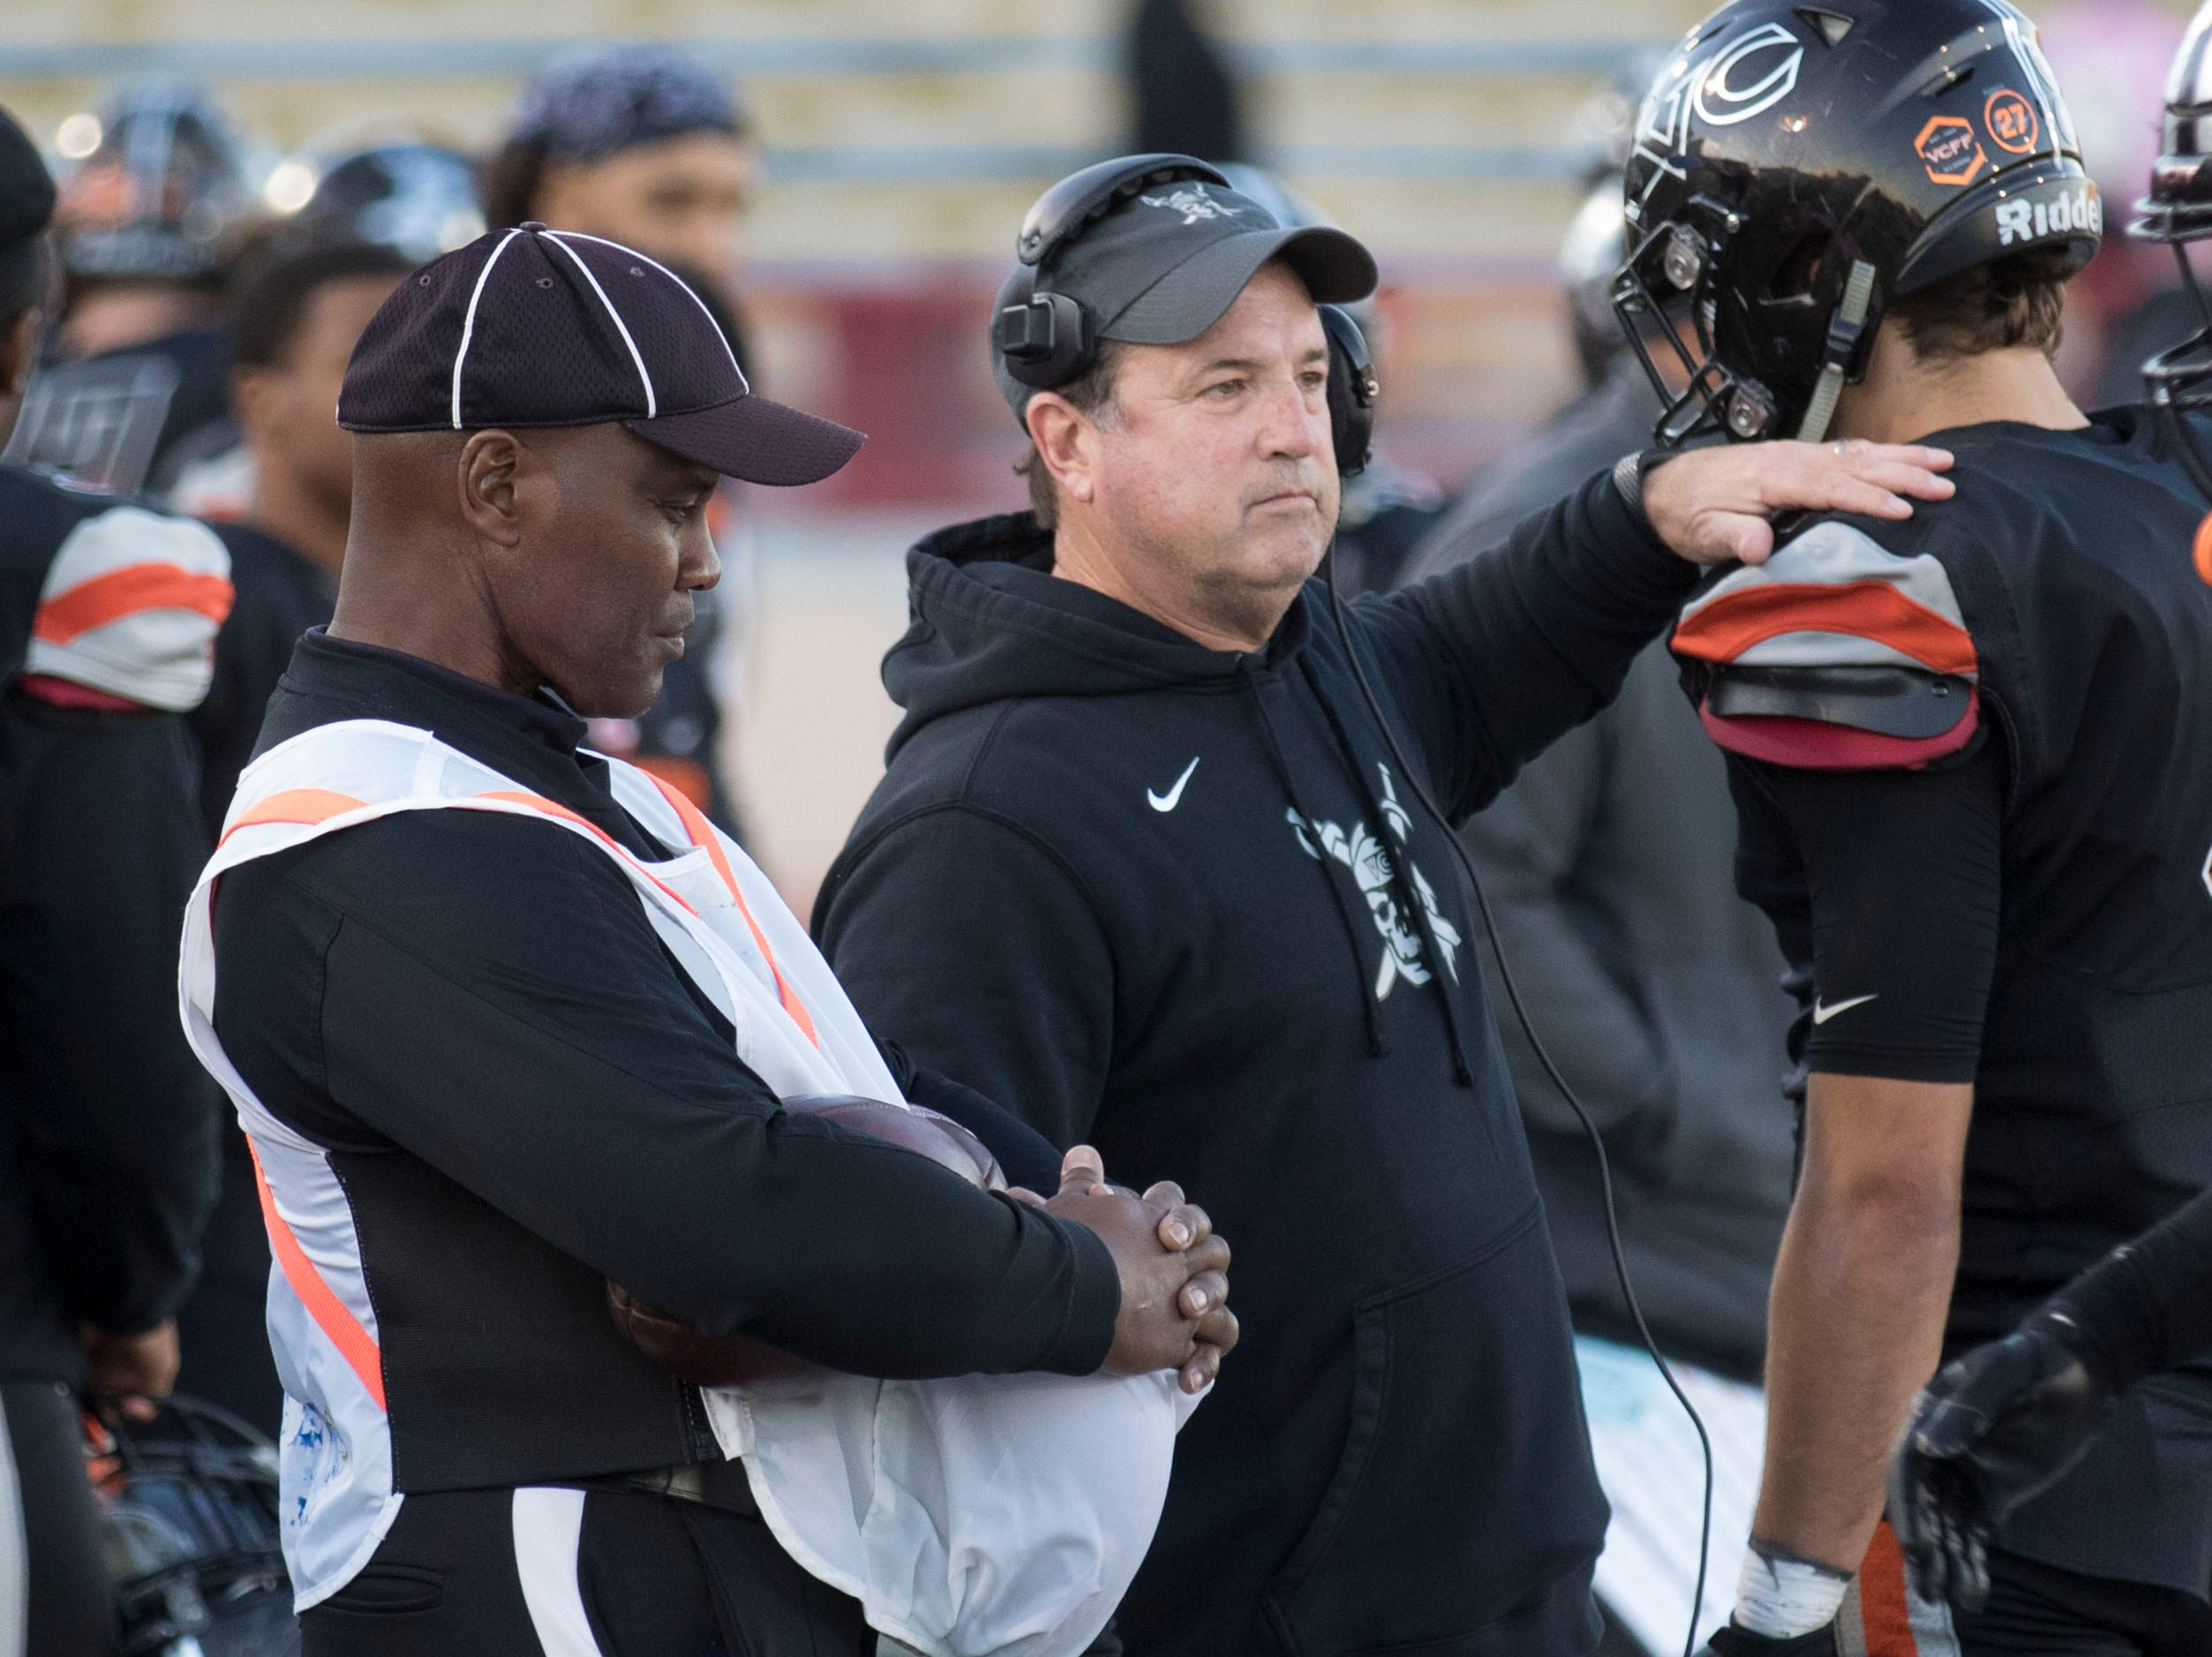 Ventura College head coach Steve Mooshagian watches from the sideline during the CCCAA state championship game on Saturday afternoon at Sacramento City's Hughes Stadium. Laney won, 40-35.